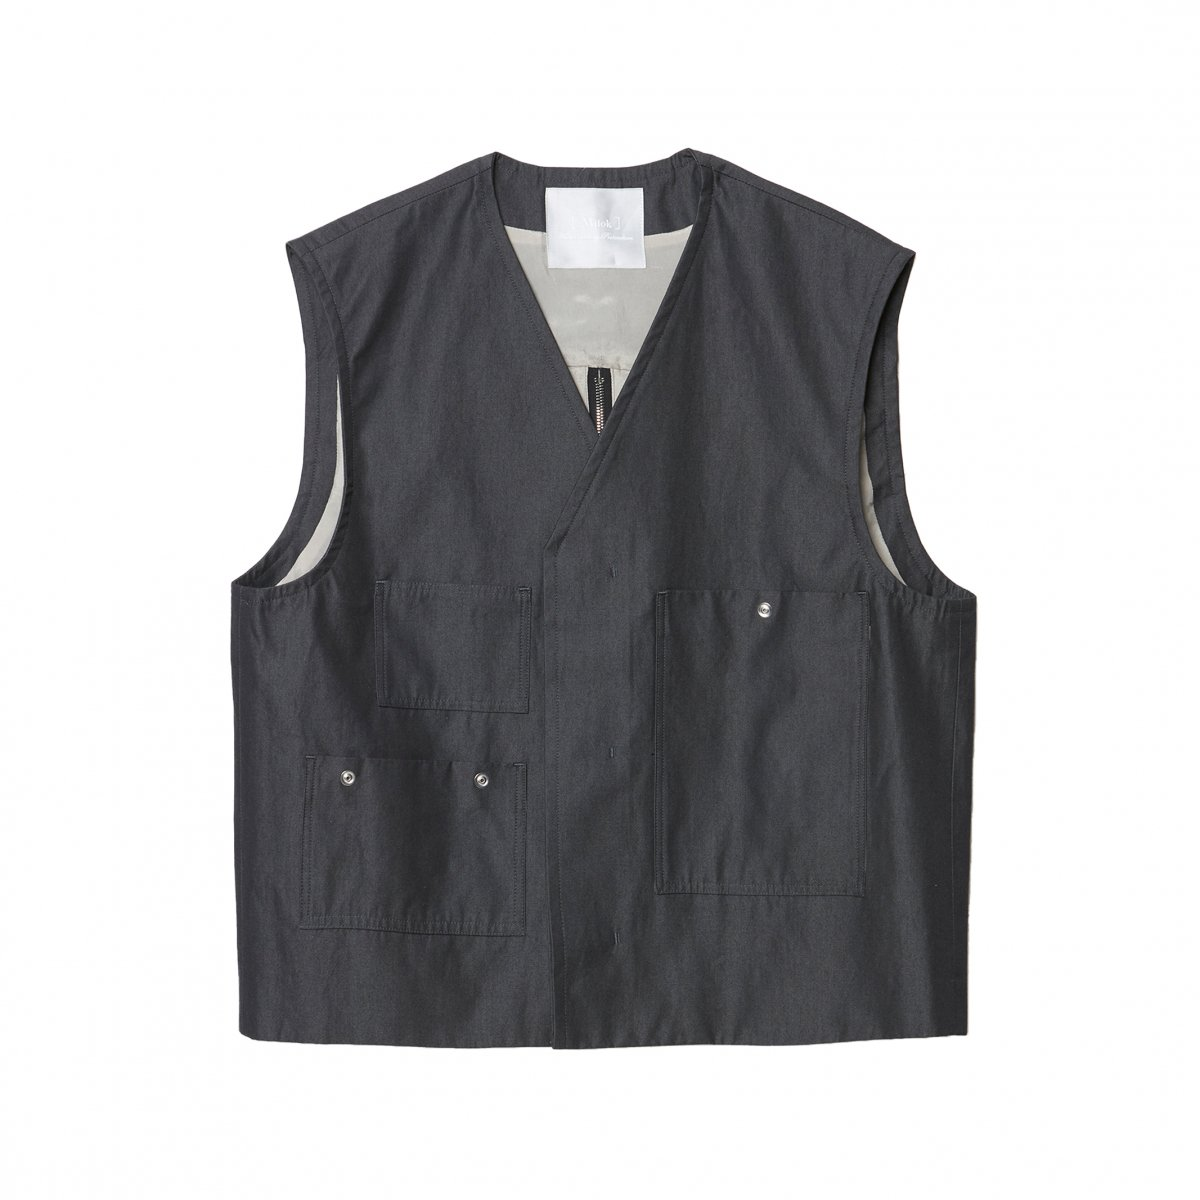 <img class='new_mark_img1' src='https://img.shop-pro.jp/img/new/icons5.gif' style='border:none;display:inline;margin:0px;padding:0px;width:auto;' />OLMETEX DYED COTTON CONSTRUCTIVE VEST / GREY